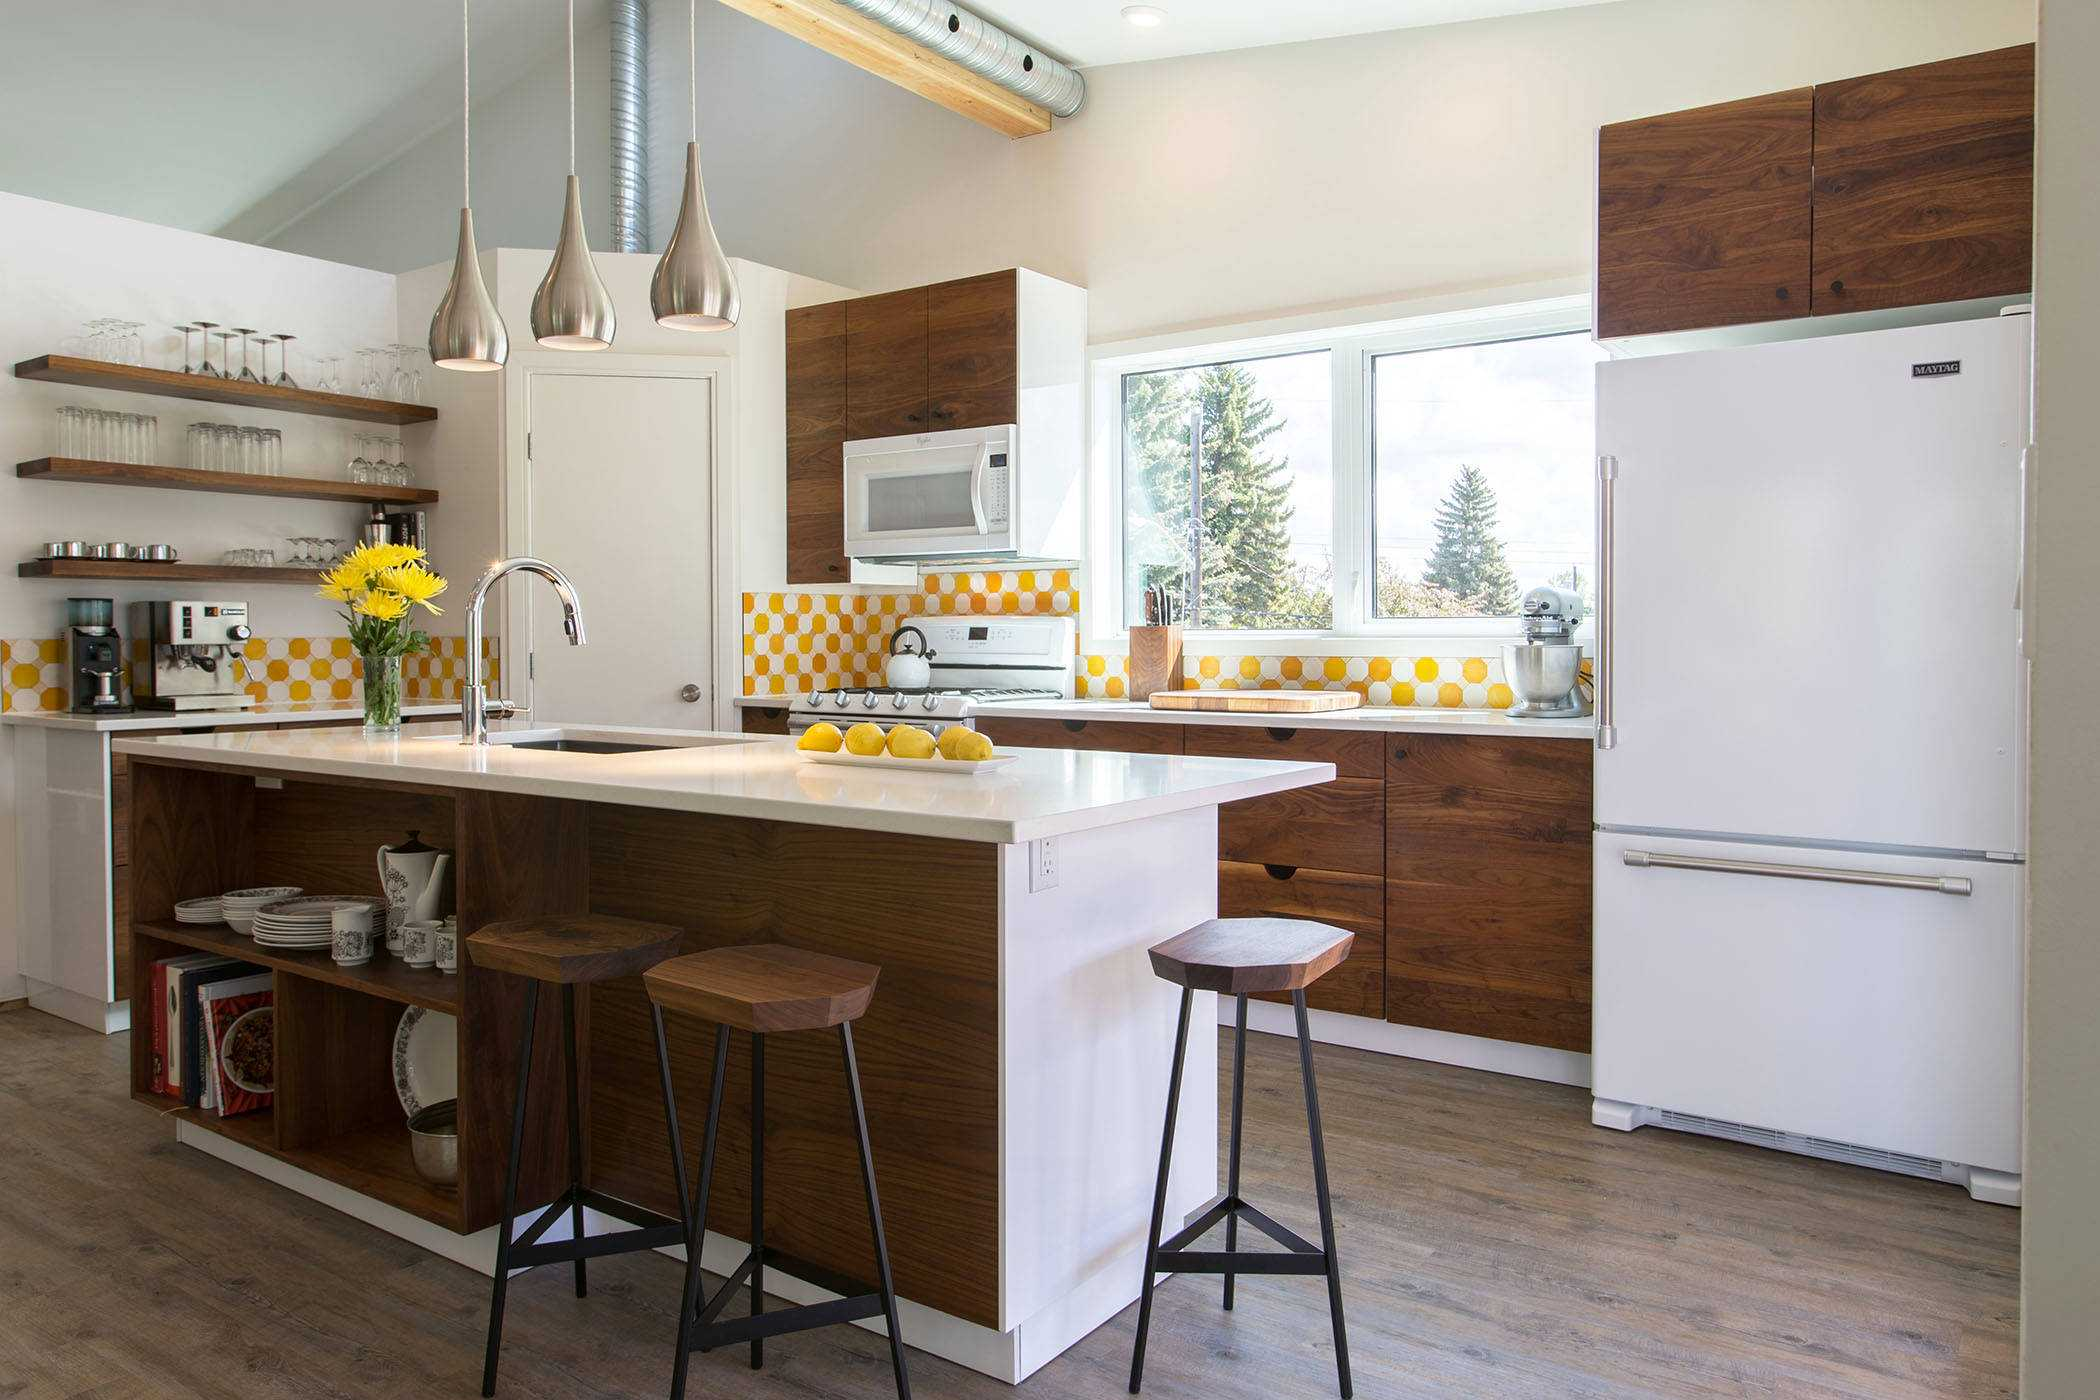 18-Hot-Kitchen-Designs-That-Will-Motivate-You-To-Become-A-Great-Cook-11.jpg